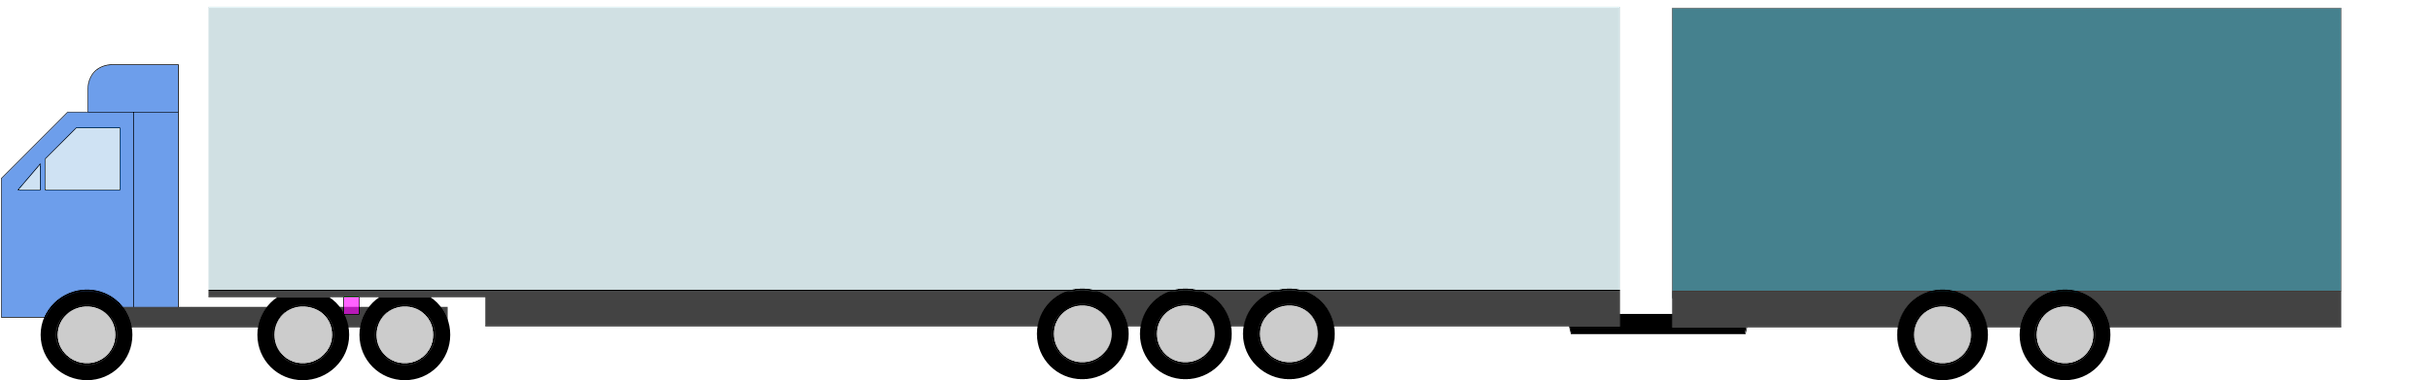 A 3-axle truck with a 3-axle semi-trailer extended wit a 2-axle center-axle trailer.